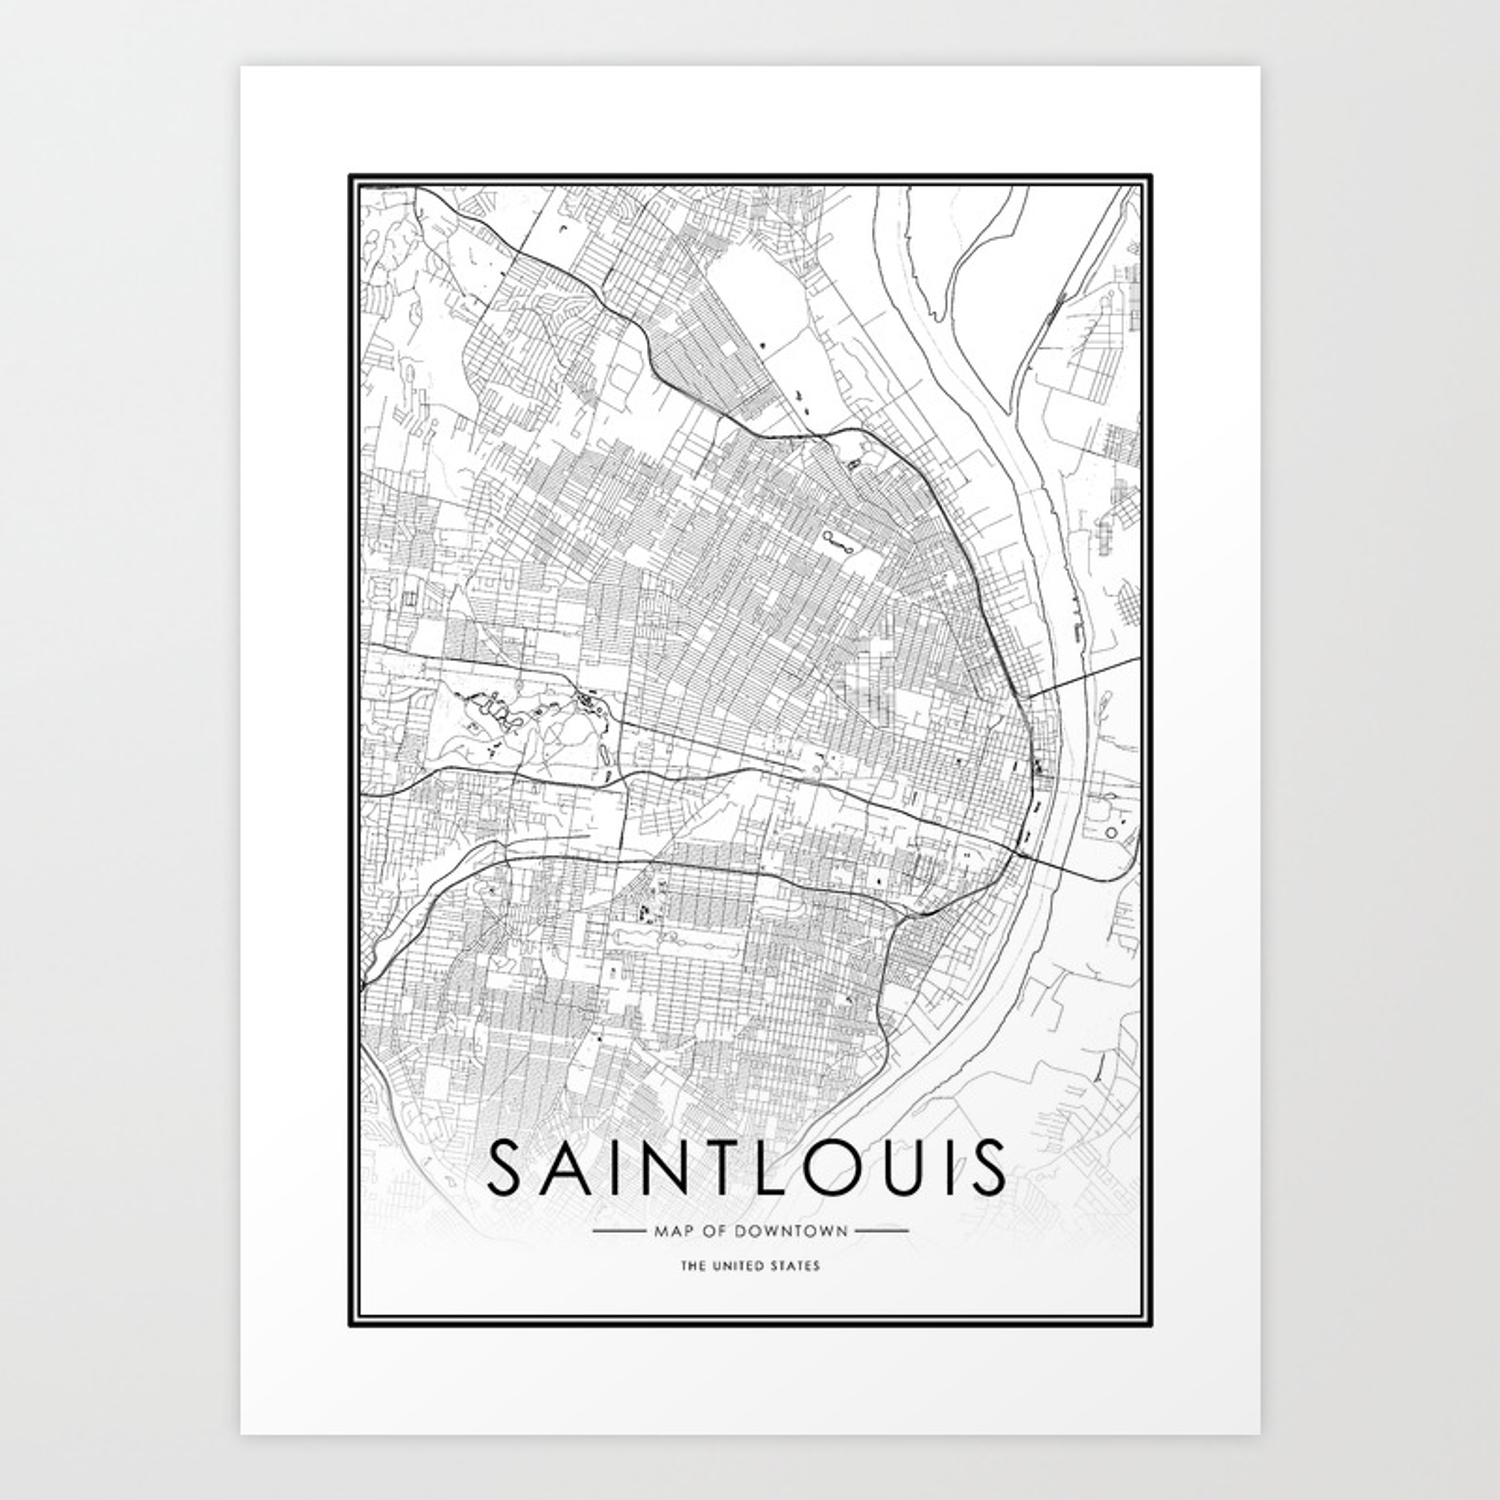 Saint louis City Map United States White and Black Art Print